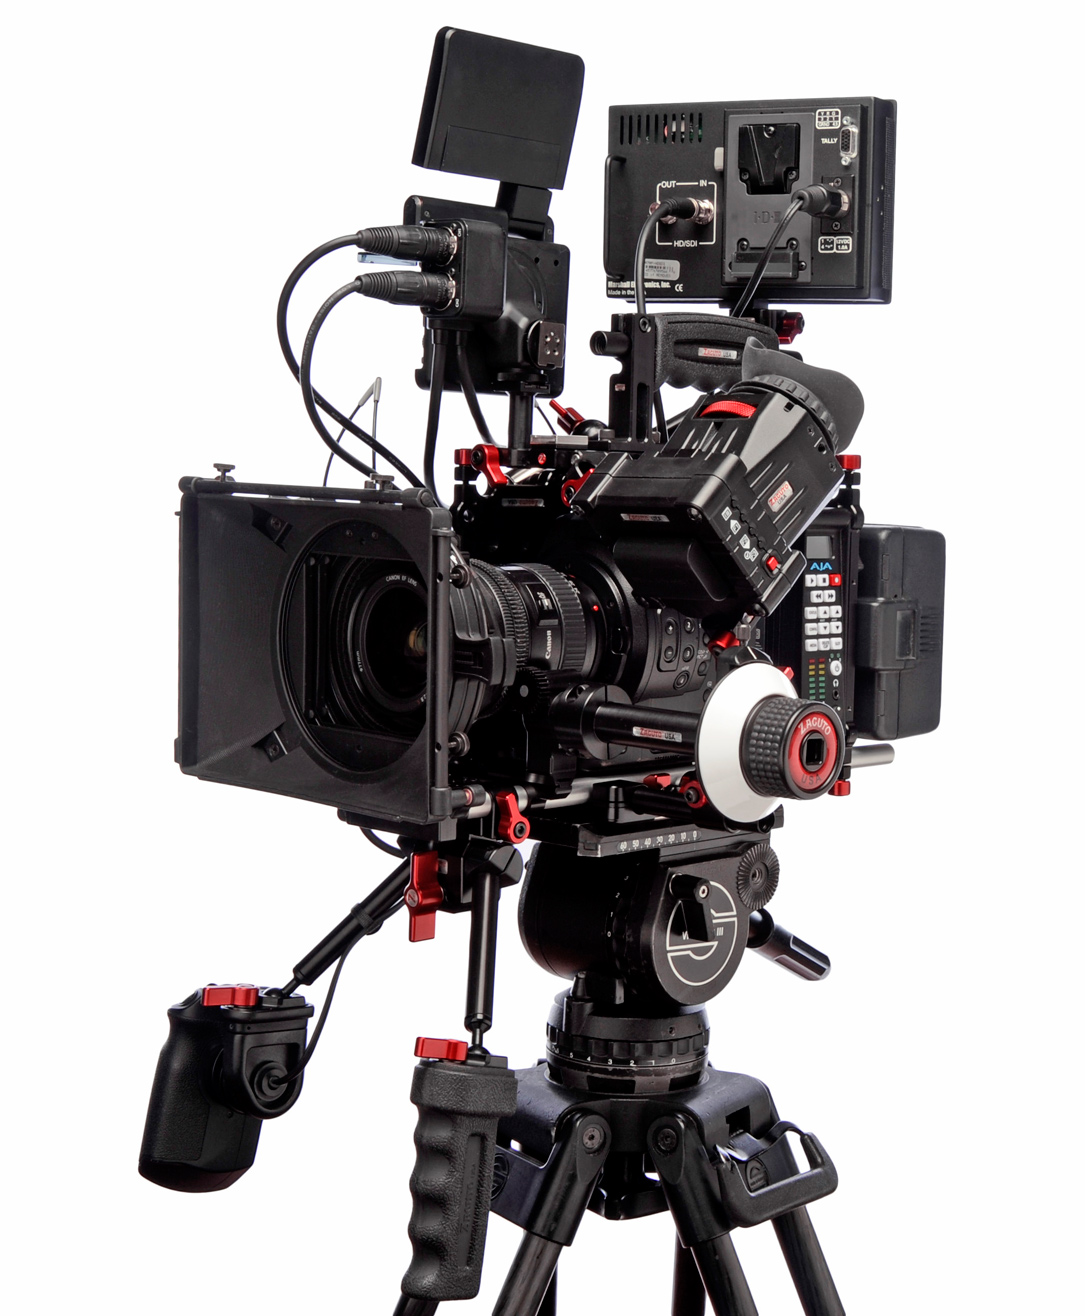 Canon Cinema C300 with Zacuto studio rig